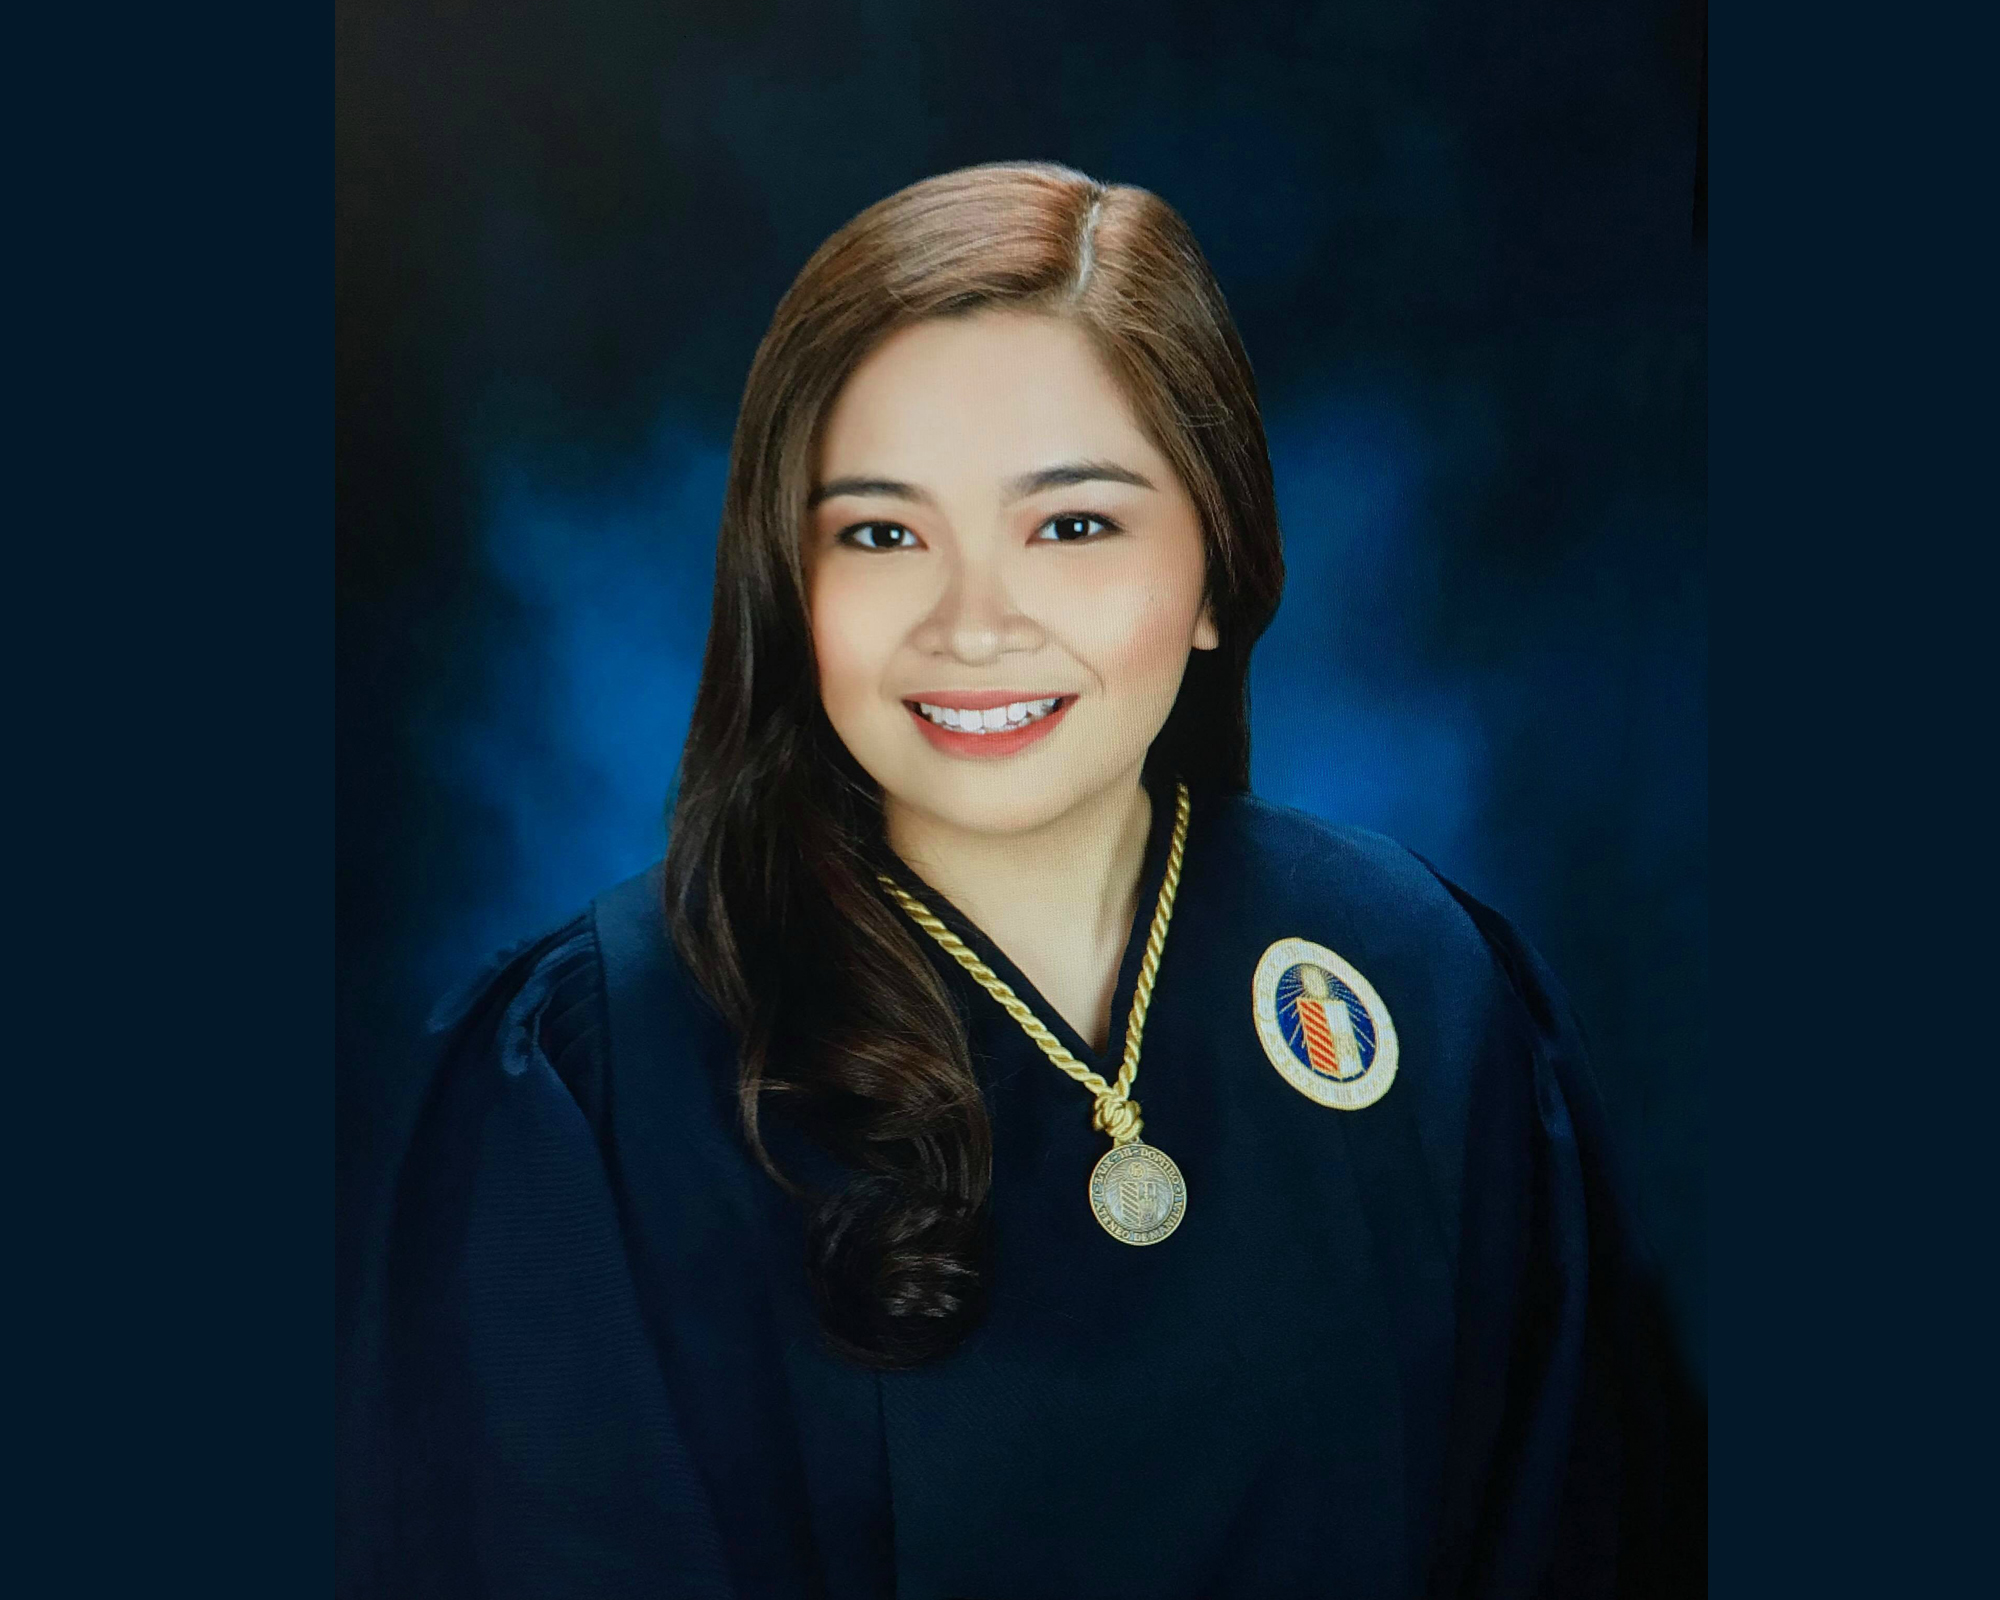 MC alumna is ADMU Summa Cum Laude